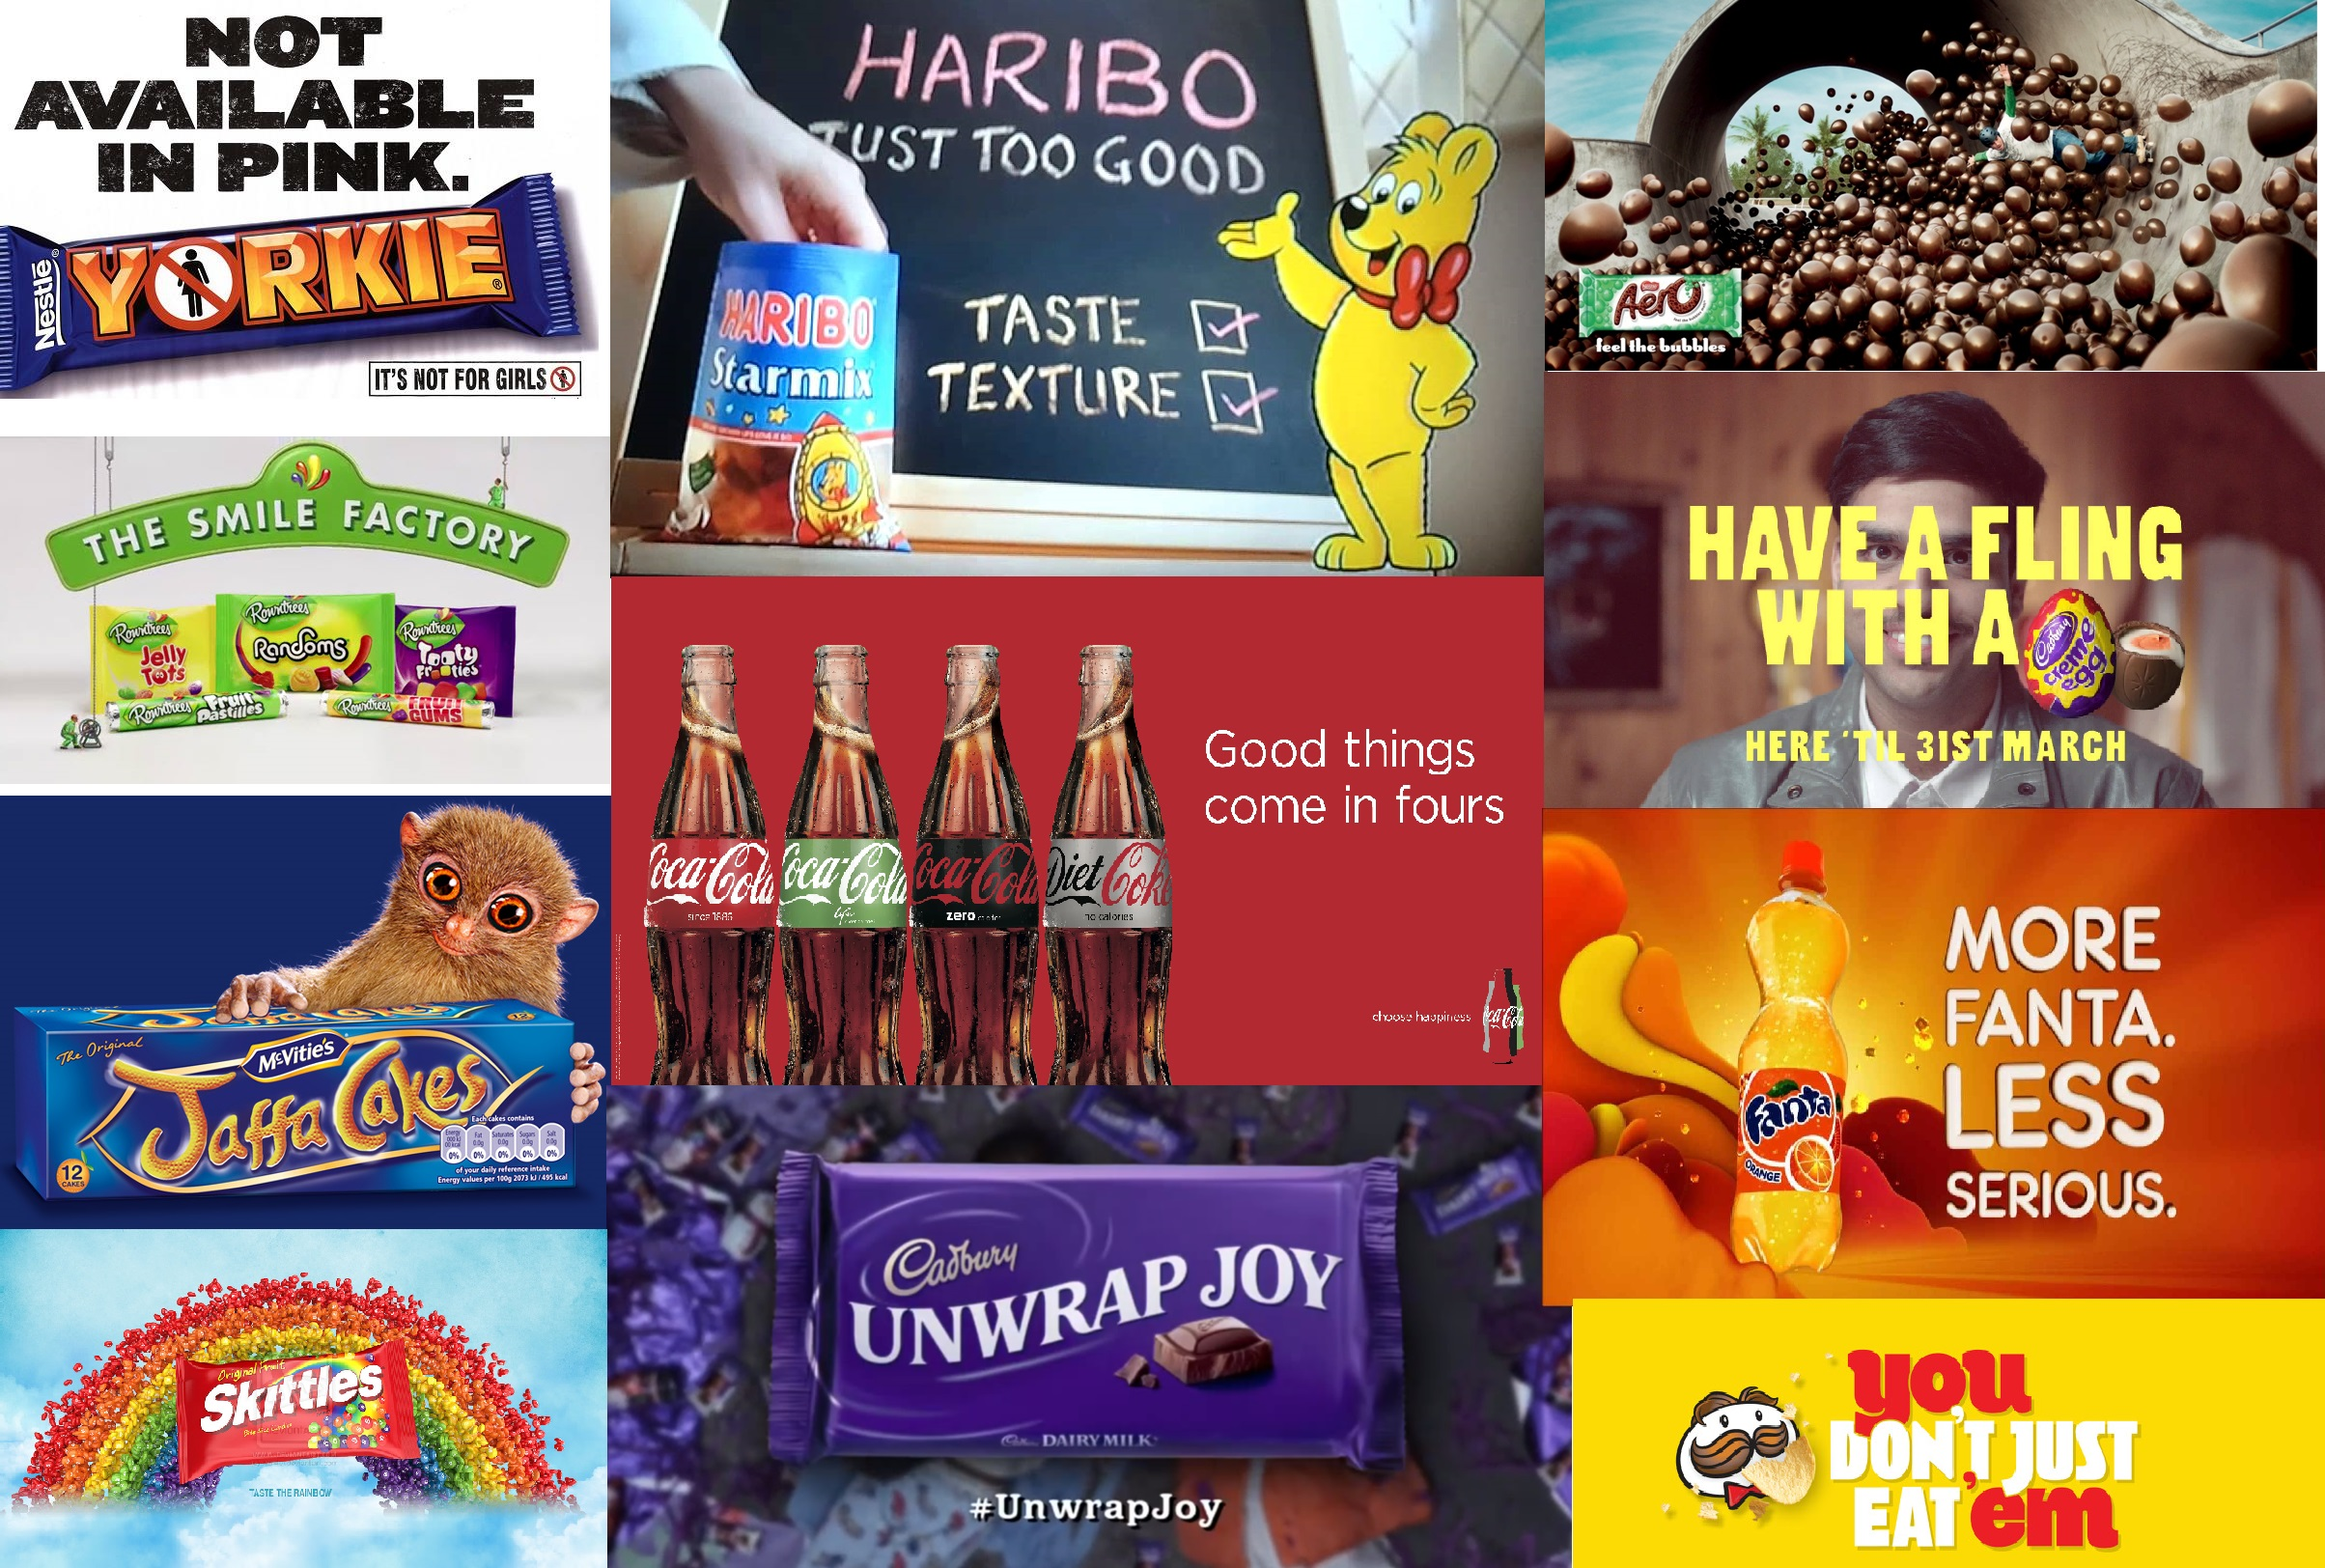 how to give up sugar - junk food advert